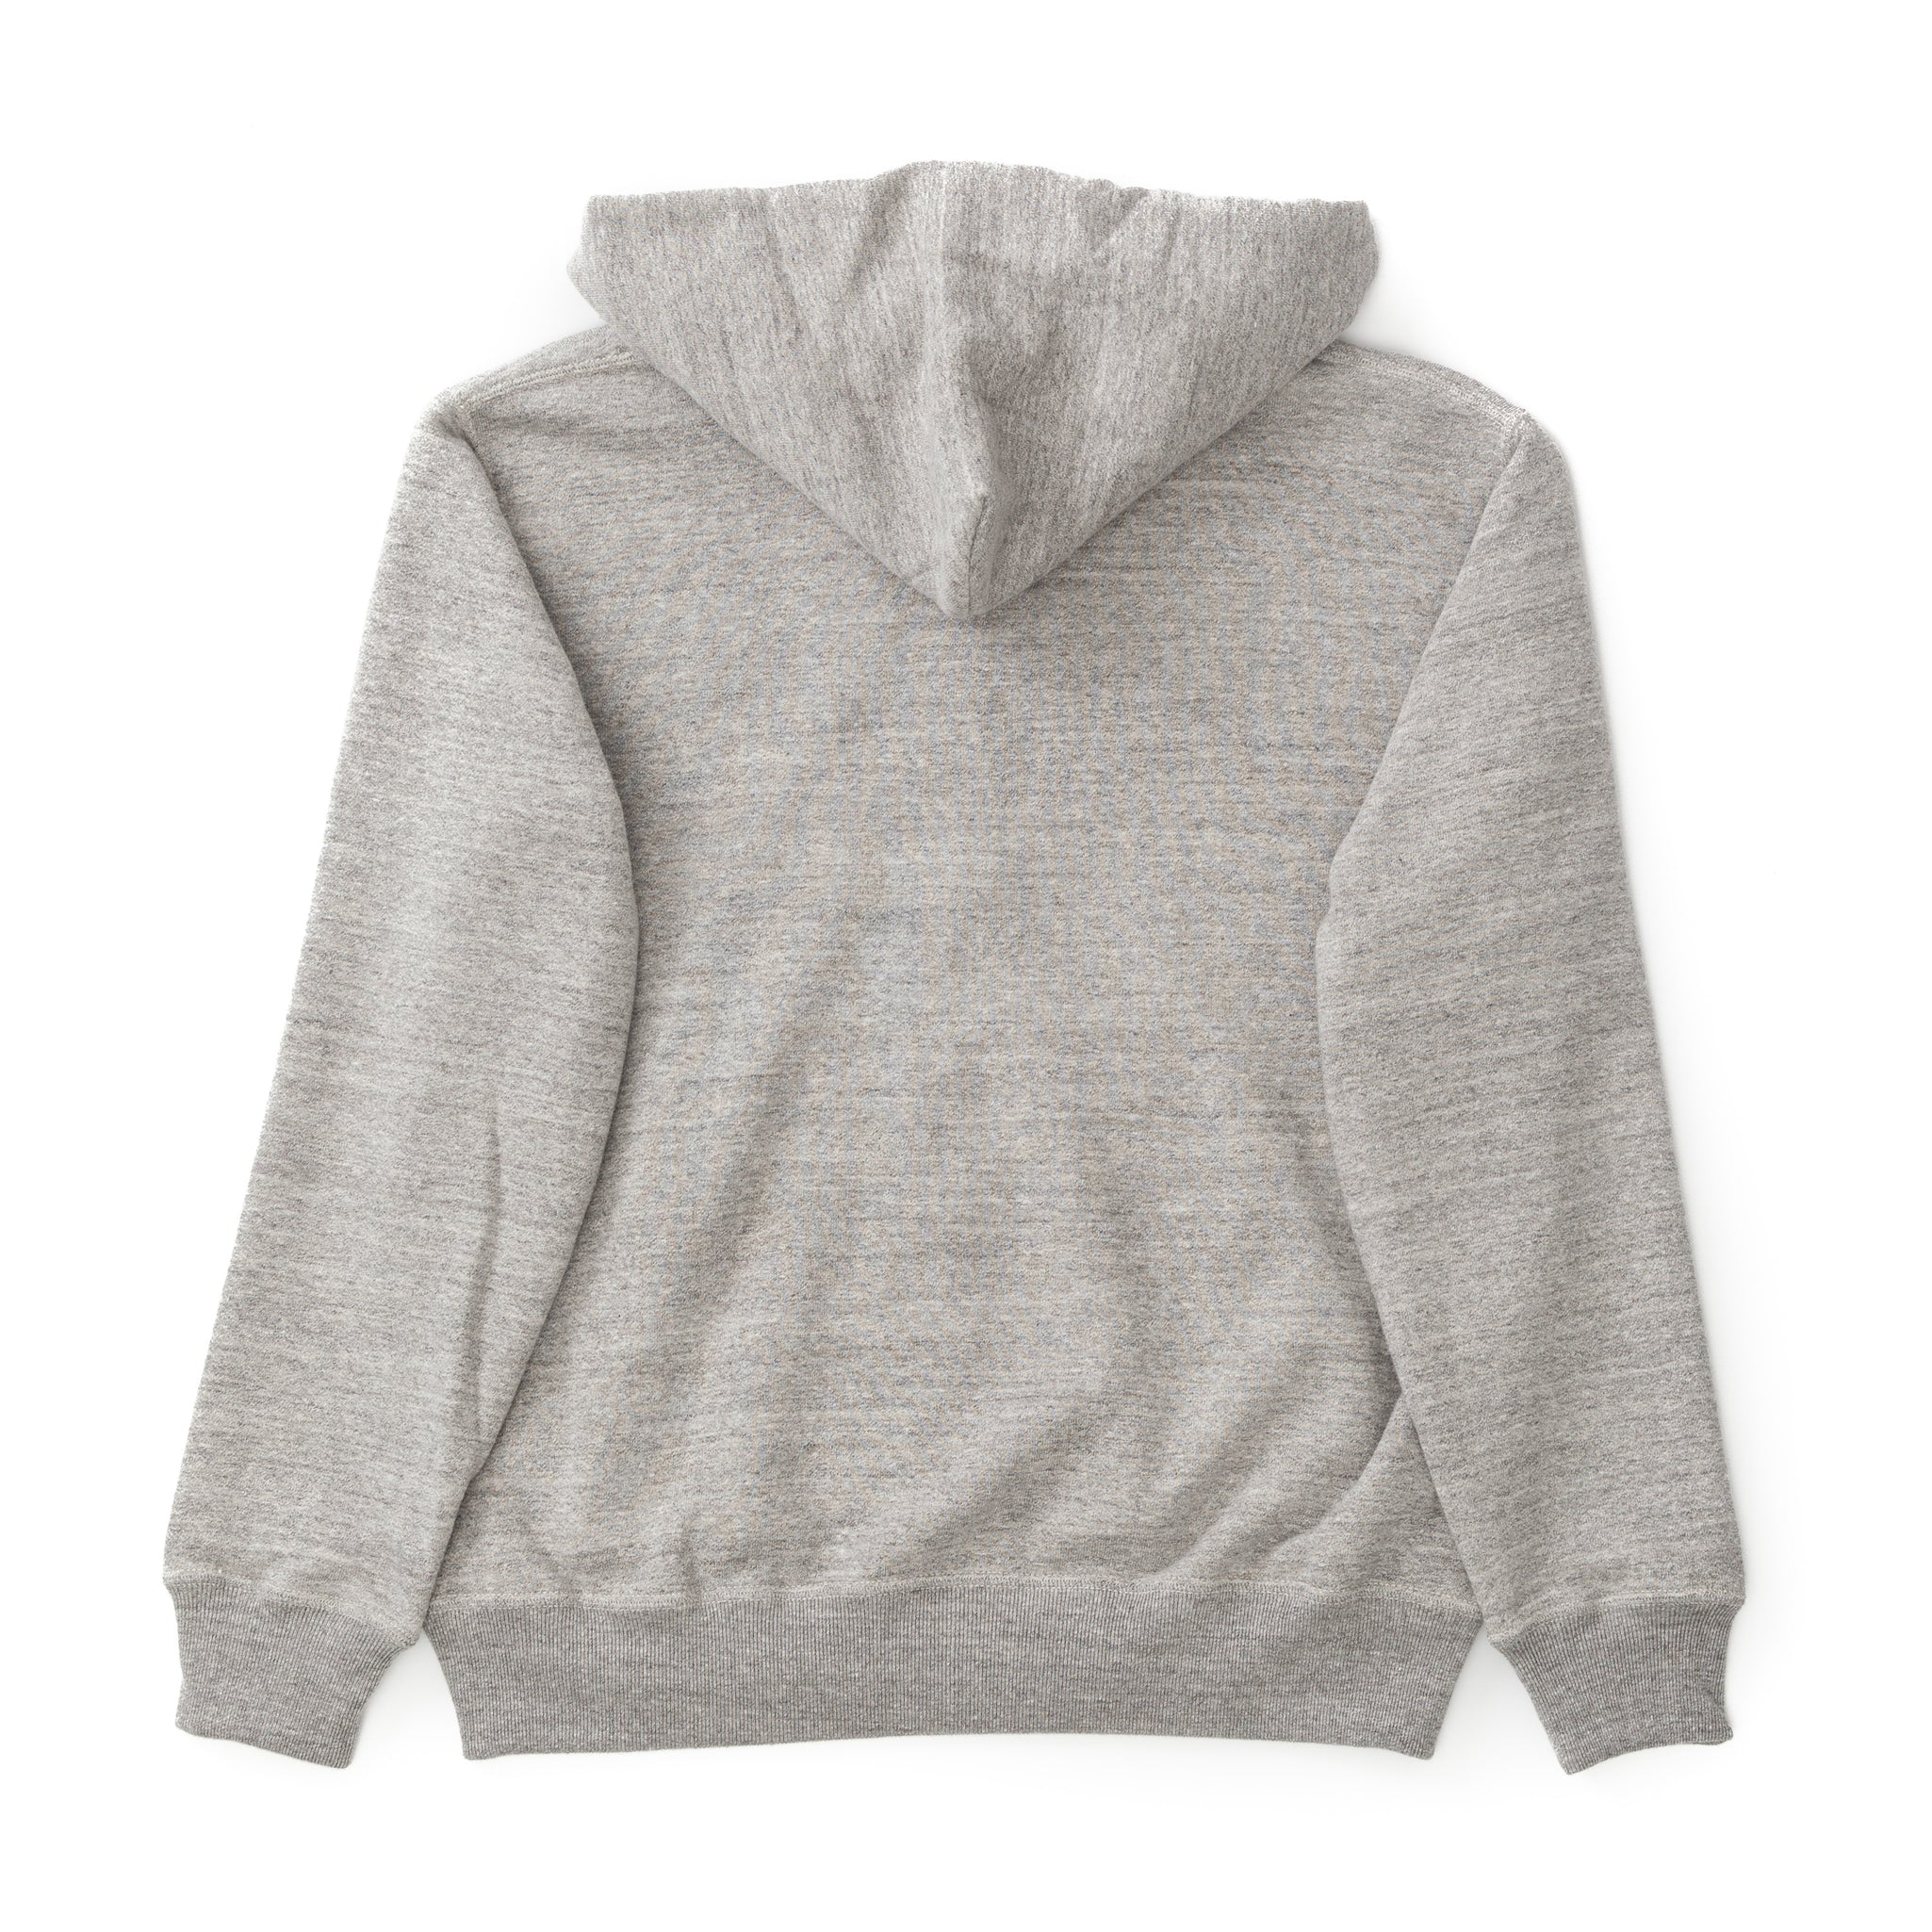 Loopback Zip-Up Hooded Sweatshirt